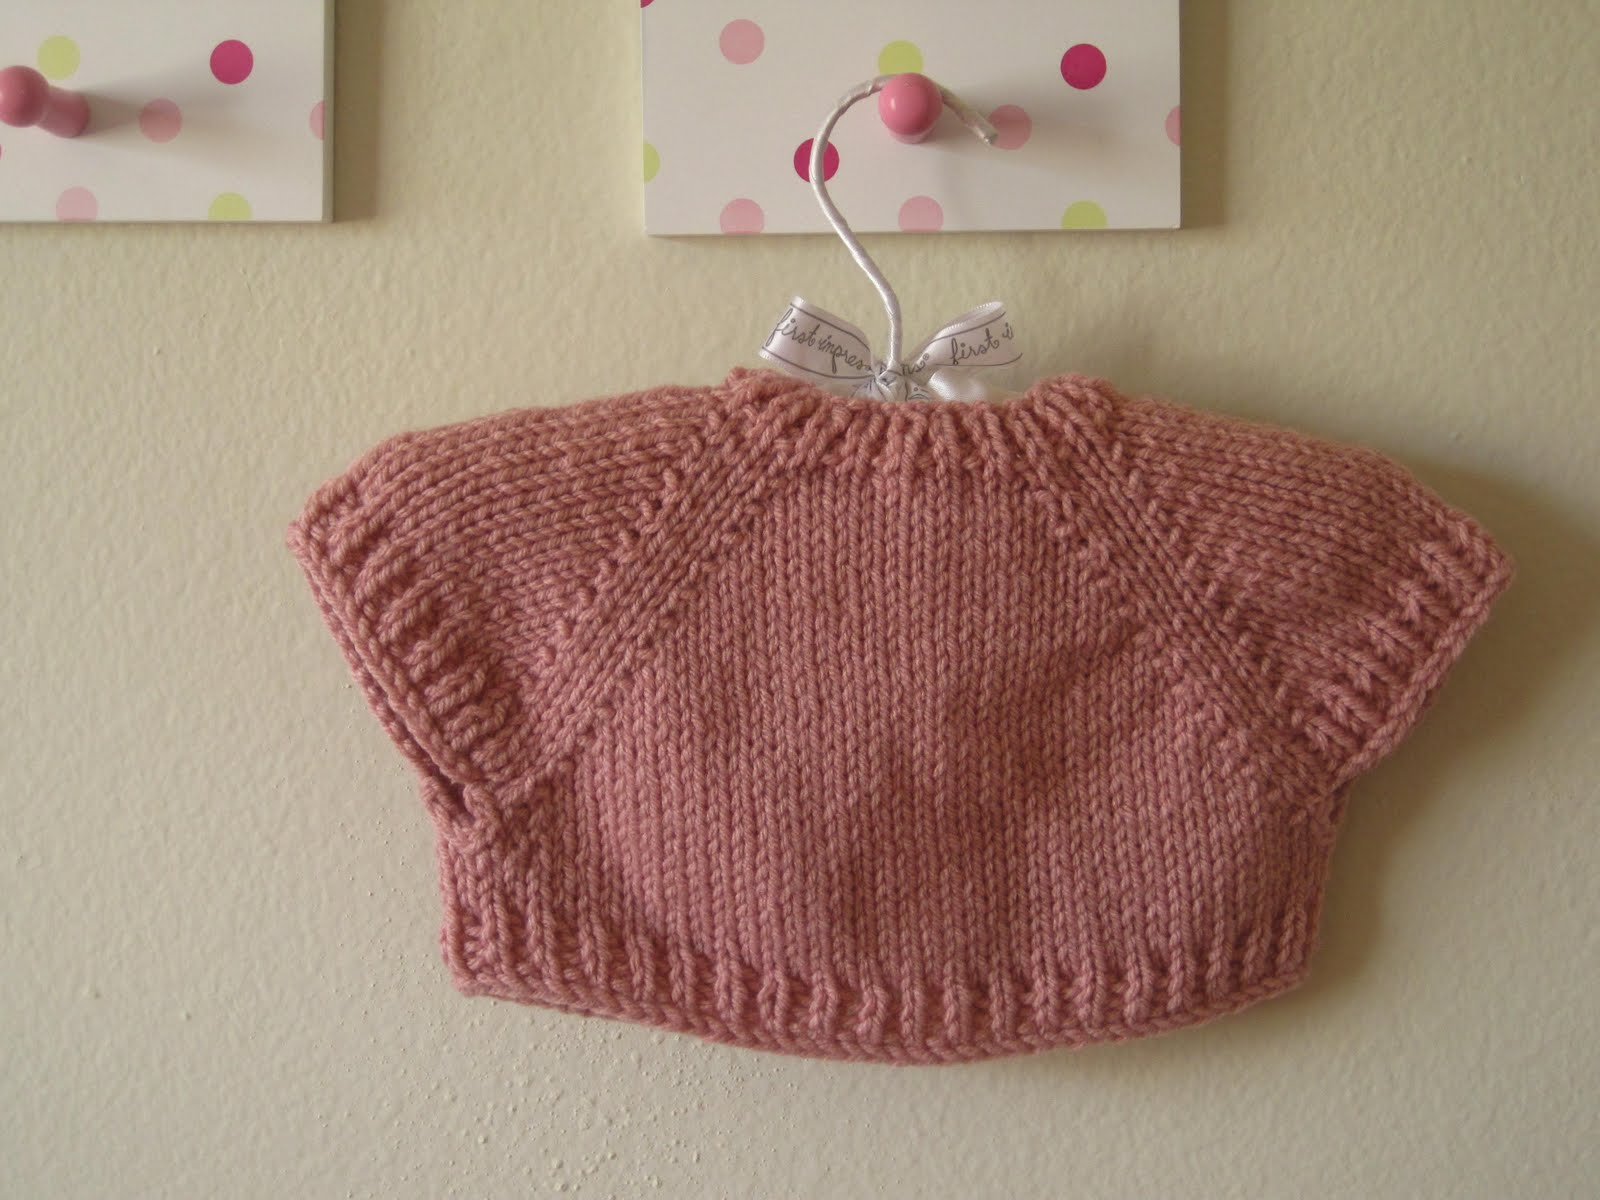 nat & callie knits.: A Quick Knit Baby Shrug